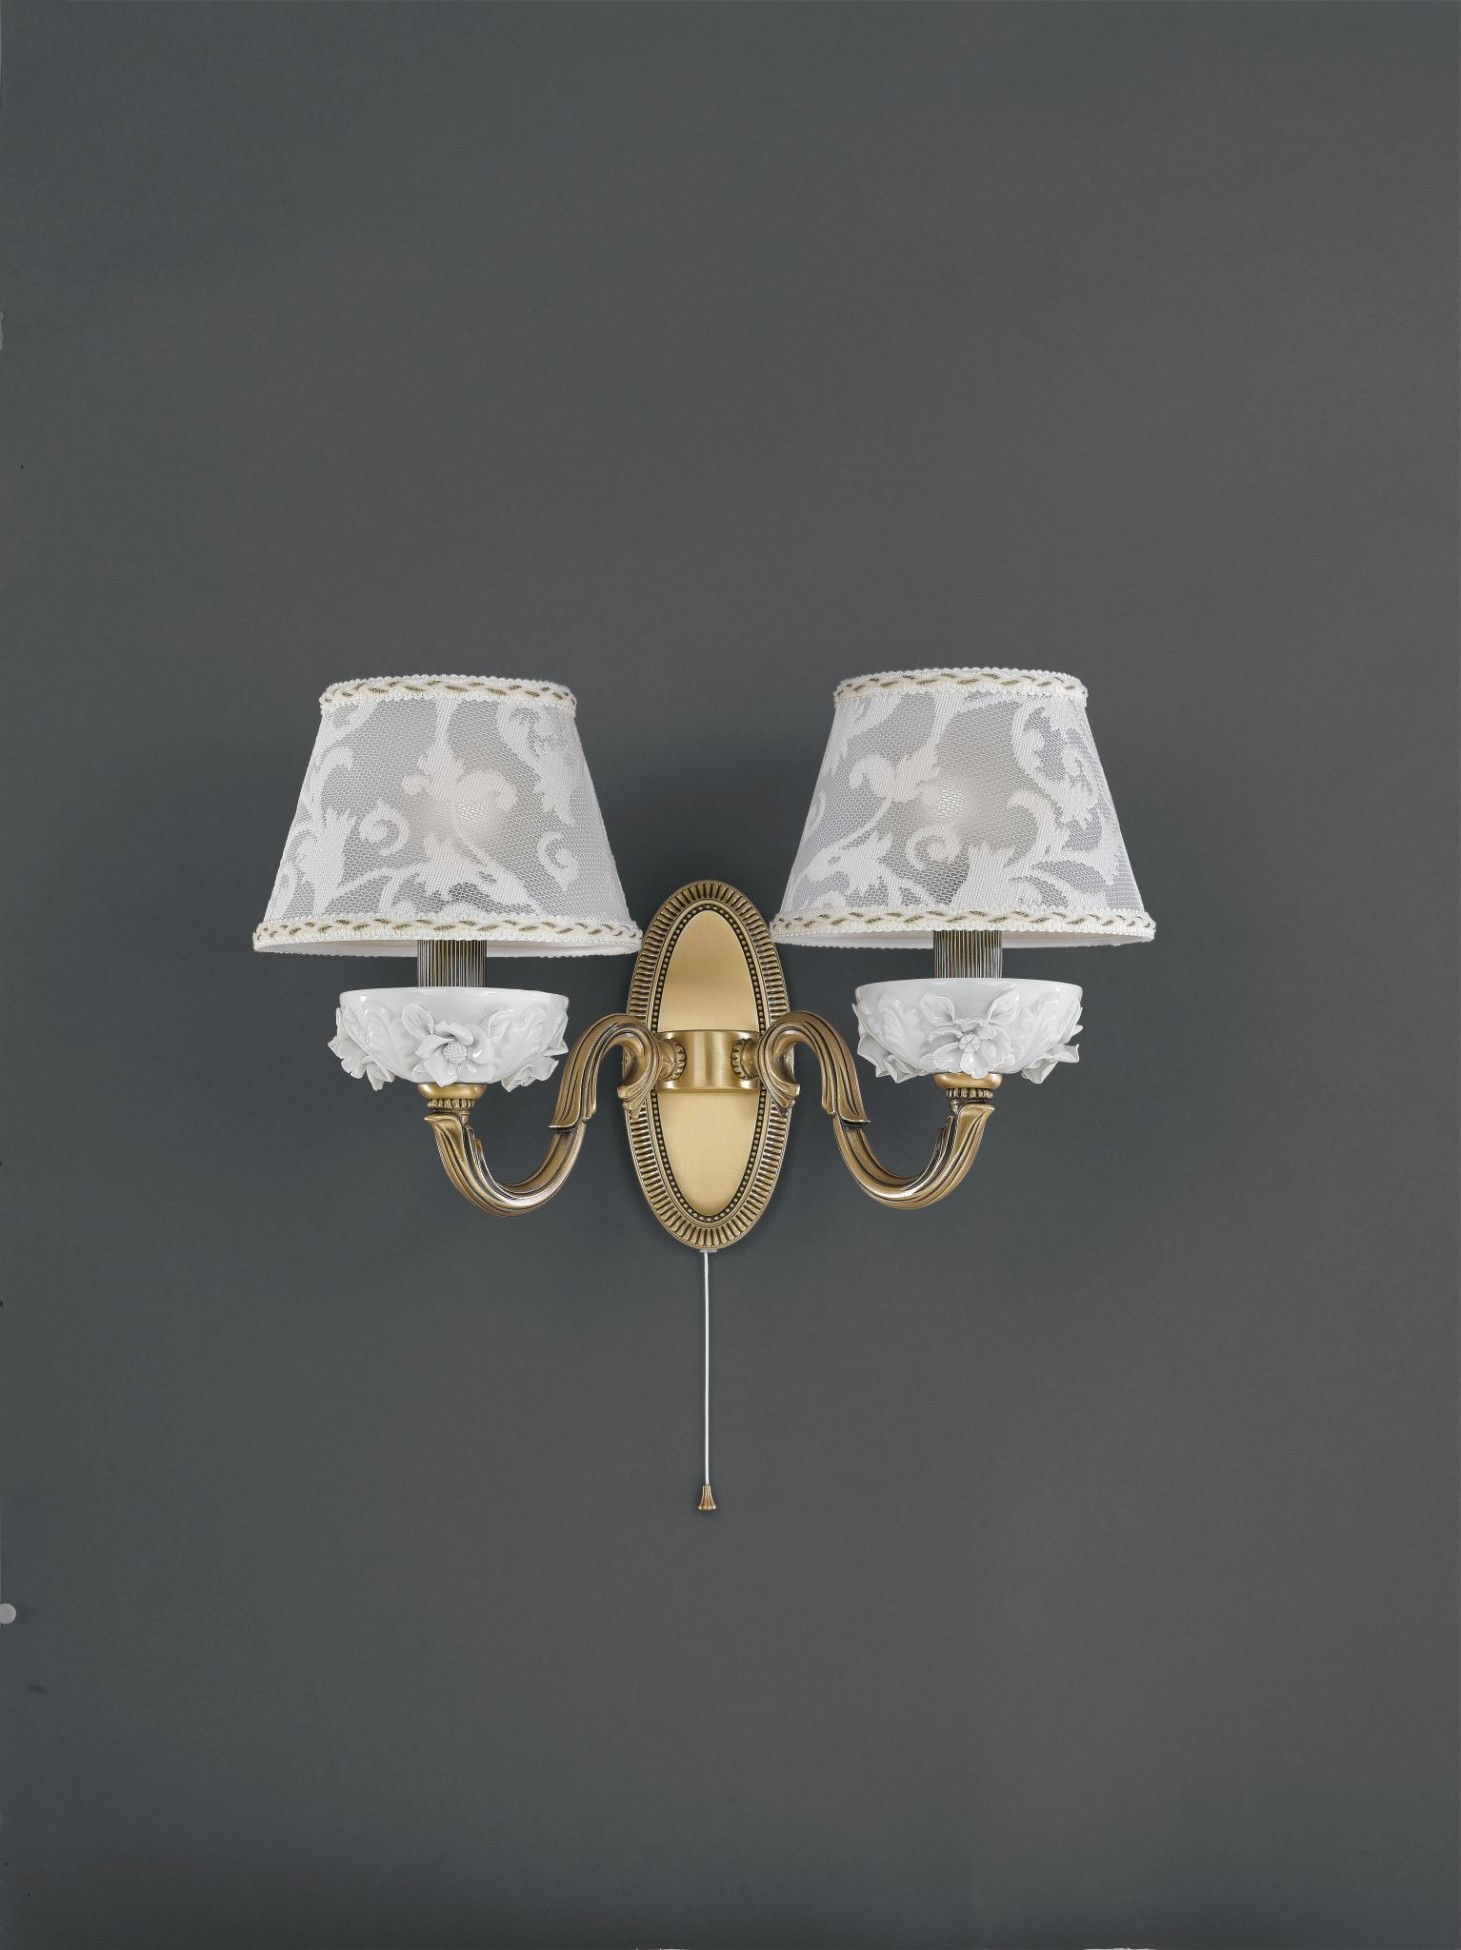 Br Wall Sconce With Lamp Shades